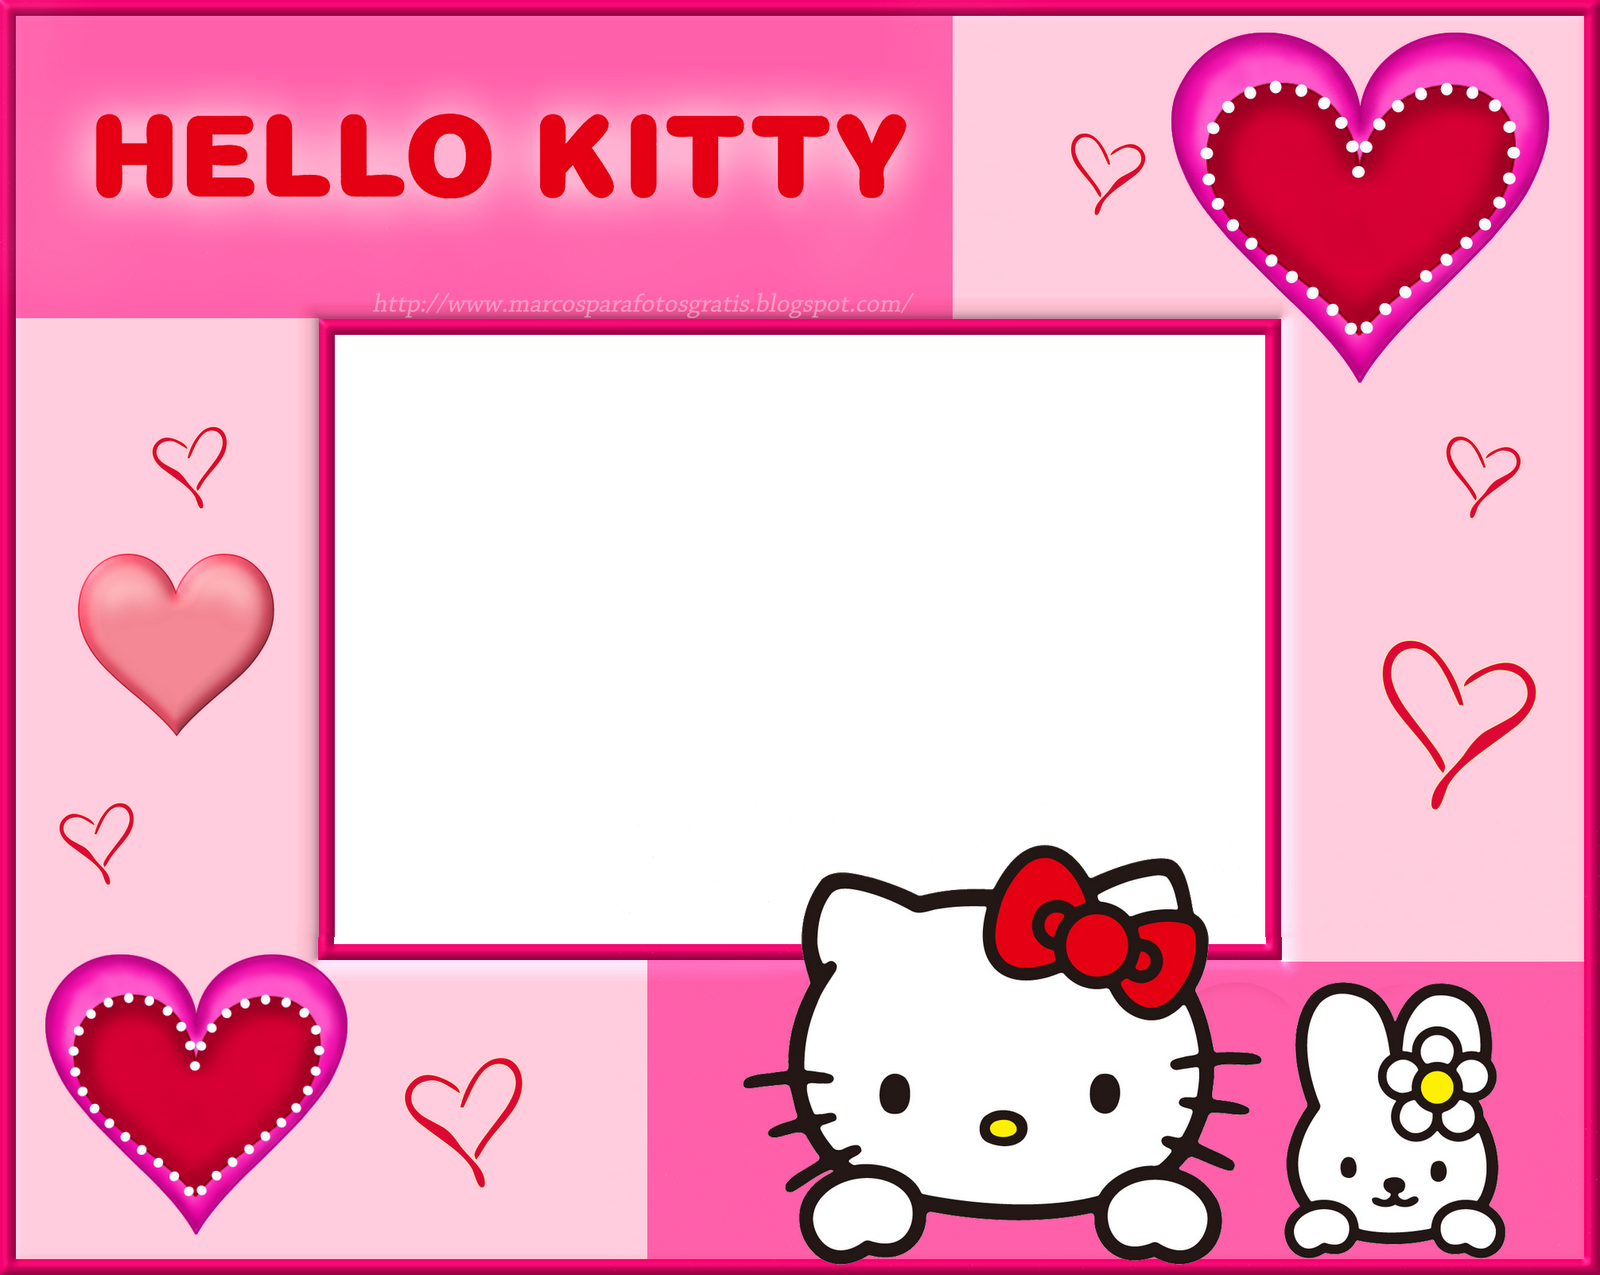 MARCOS PARA PHOTOSHOP Y ALGO MAS: HELLO KITTY